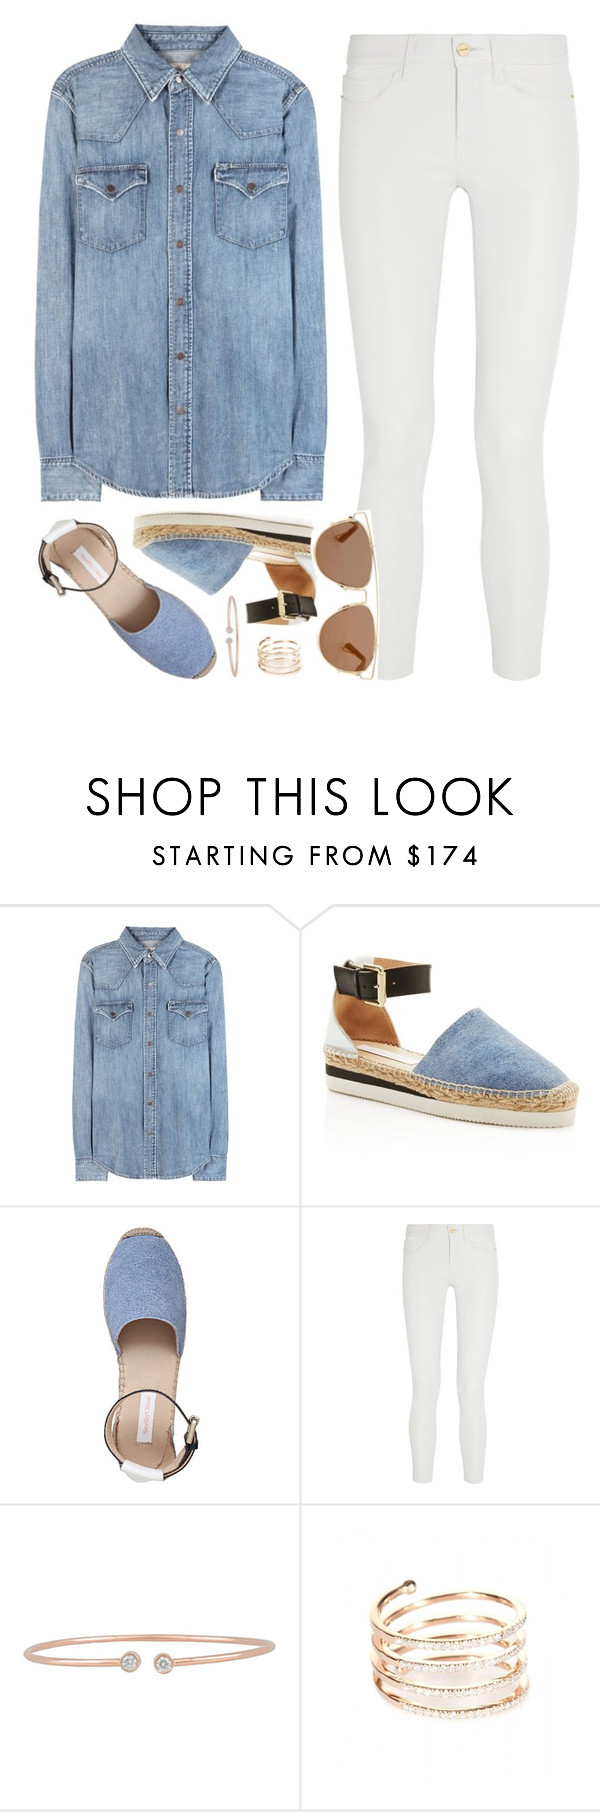 """""""OOTD"""" by felytery ❤ liked on Polyvore featuring Polo Ralph Lauren, See by Chloé, Frame Denim, Forevermark, STONE and Christian Dior"""